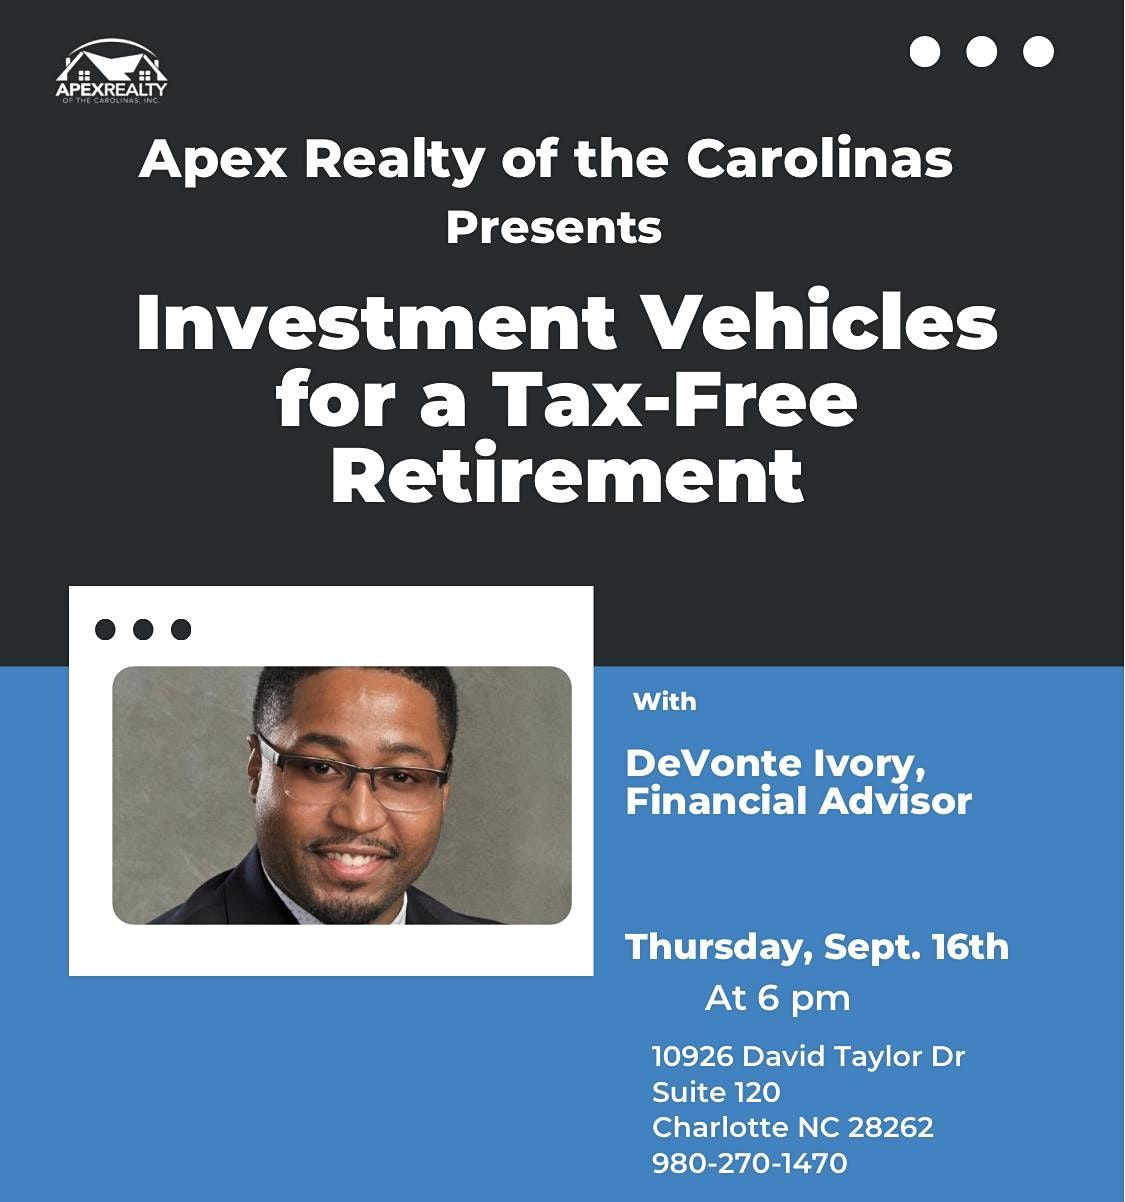 Investment Vehicles for a Tax-Free Retirement (with Devonte Ivory)